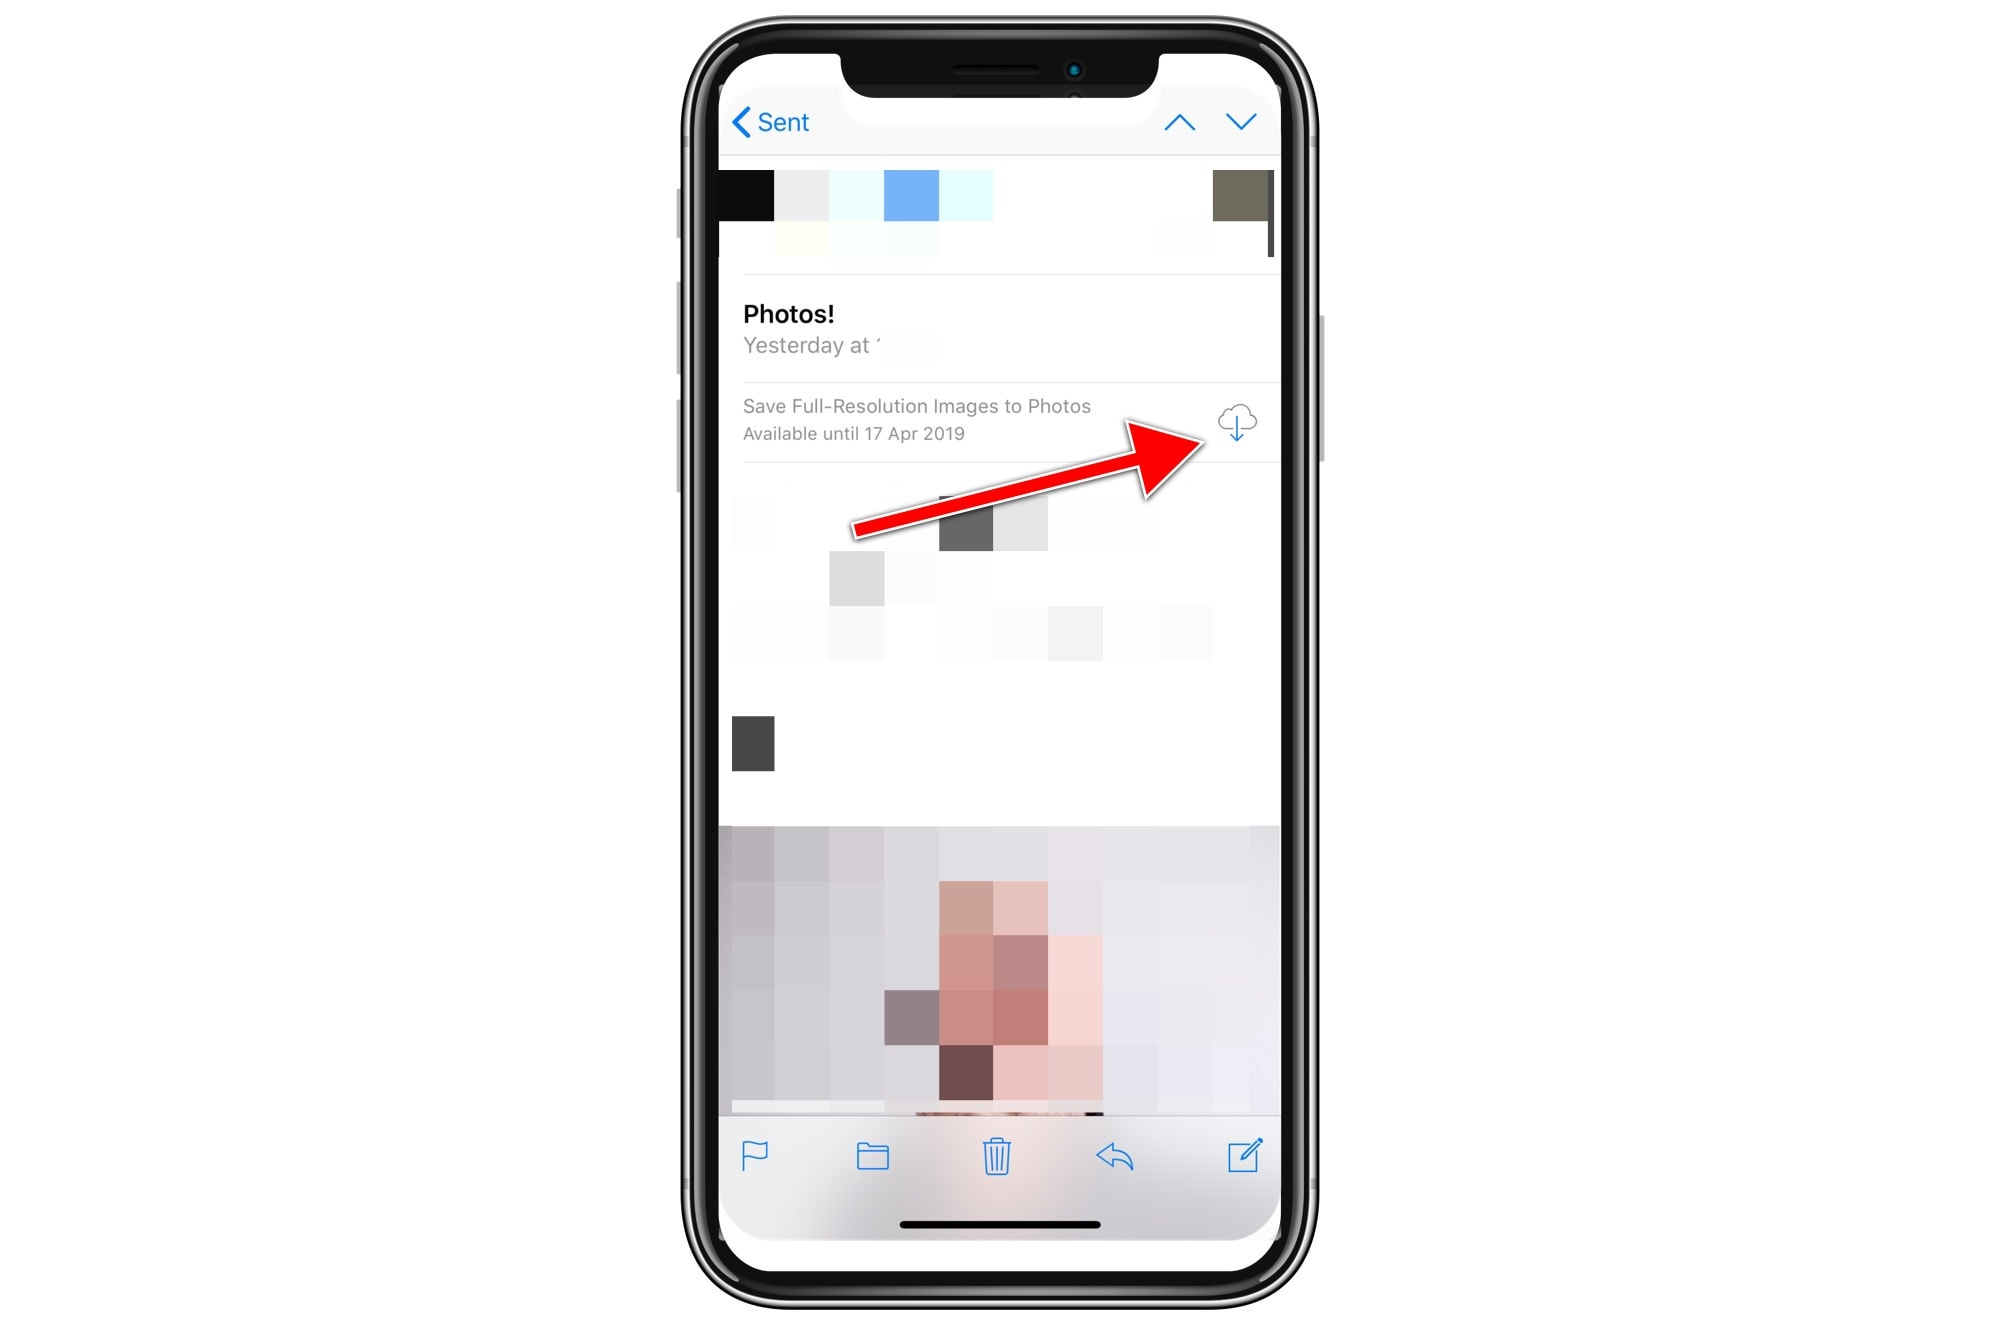 Add incoming Mail Drops straight to the Photos app.